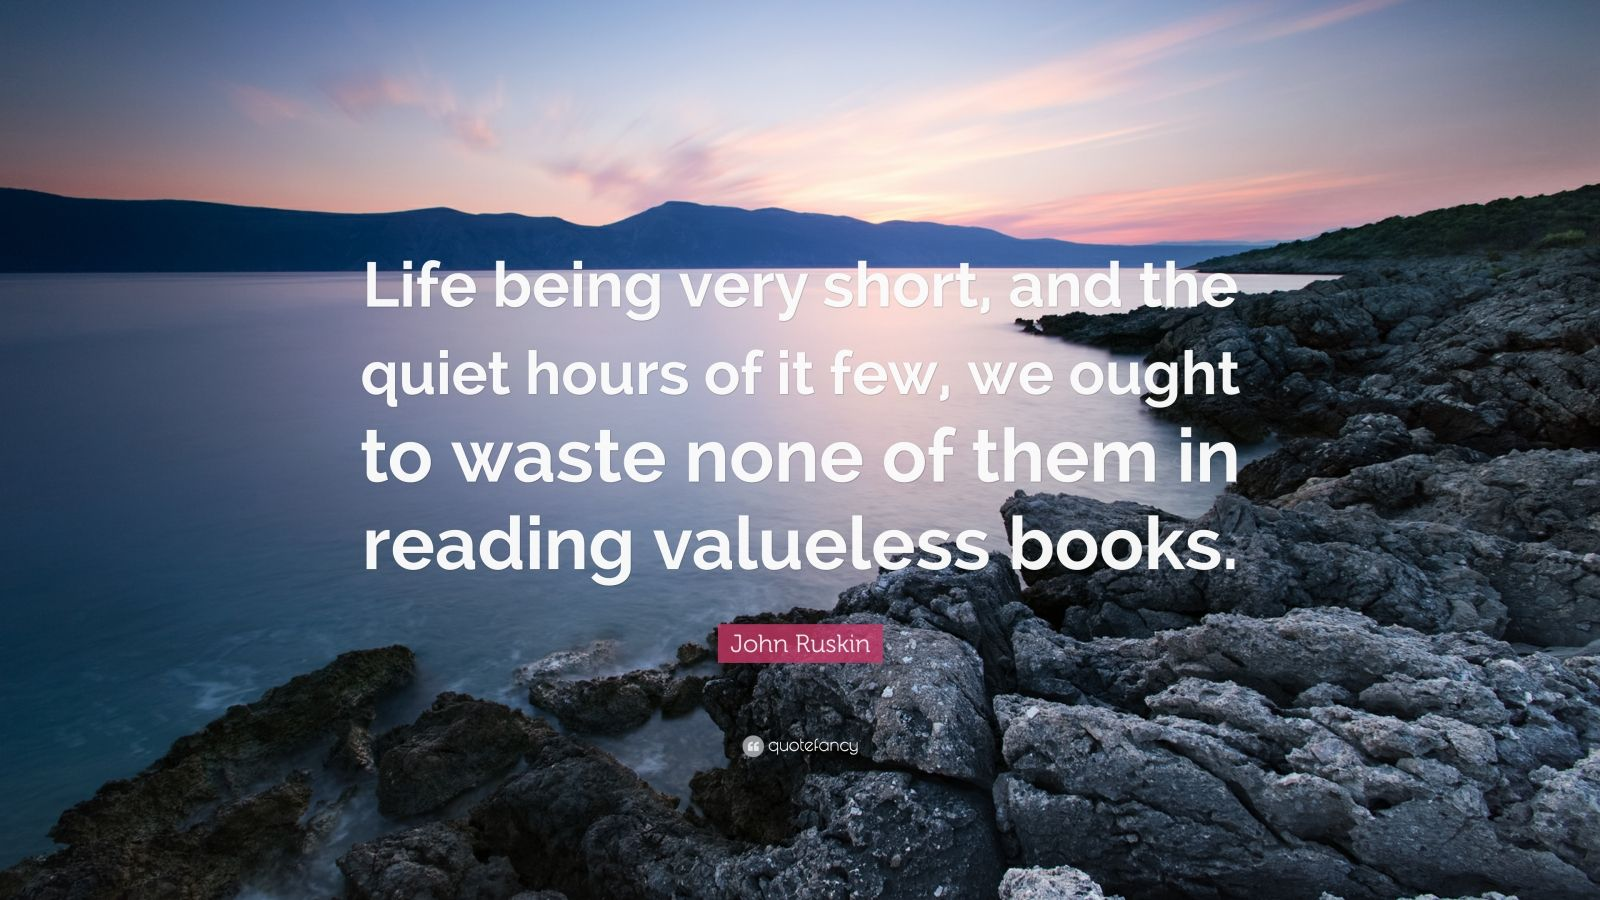 """John Ruskin Quote: """"Life being very short, and the quiet hours of it few, we ought to waste none of them in reading valueless books."""""""